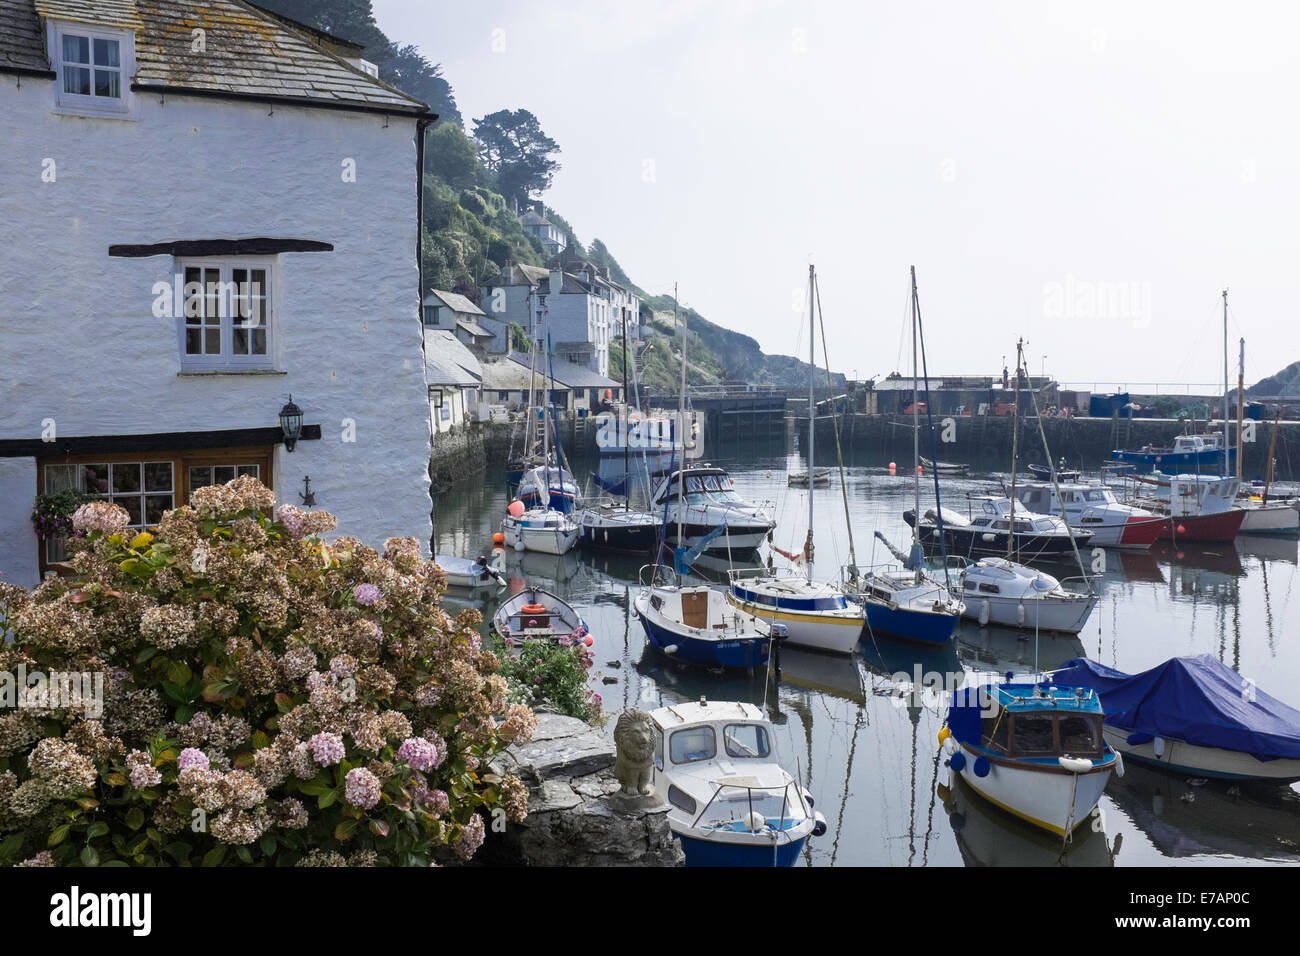 Fishermen's houses and fishing boats in the historic fishing village of Polperro, Cornwall Stock Photo